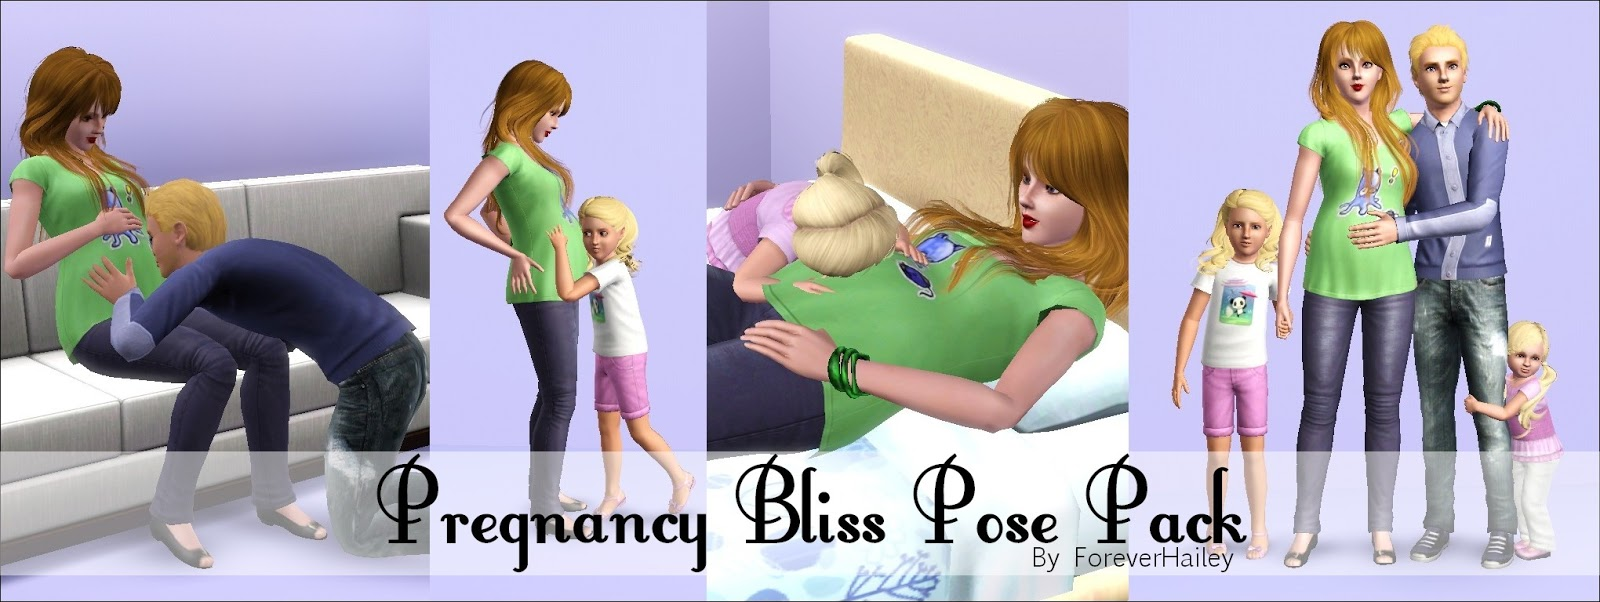 Sims 3 Pregnancy Poses - Bing images